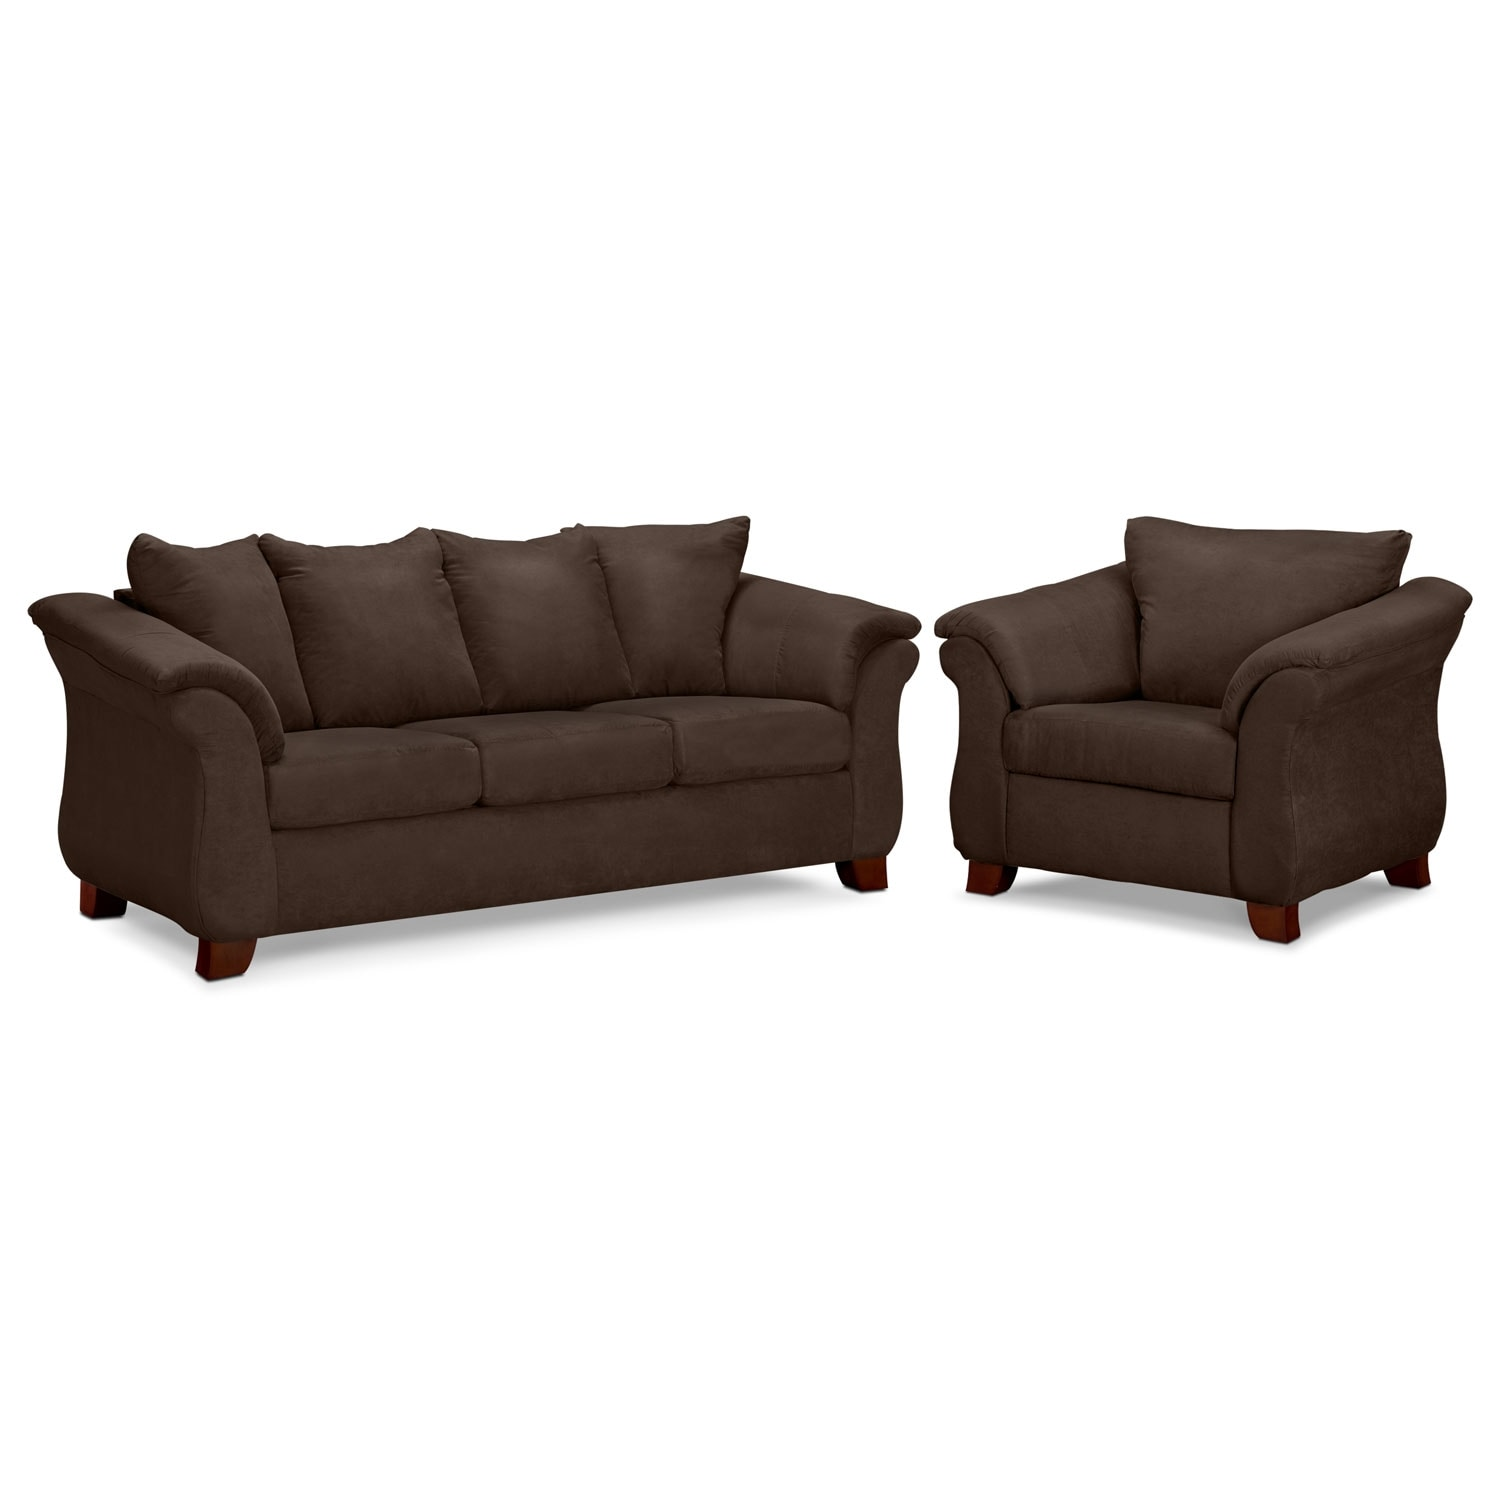 American Signature Furniture Living Room: Adrian Chocolate 2 Pc. Living Room W/ Chair